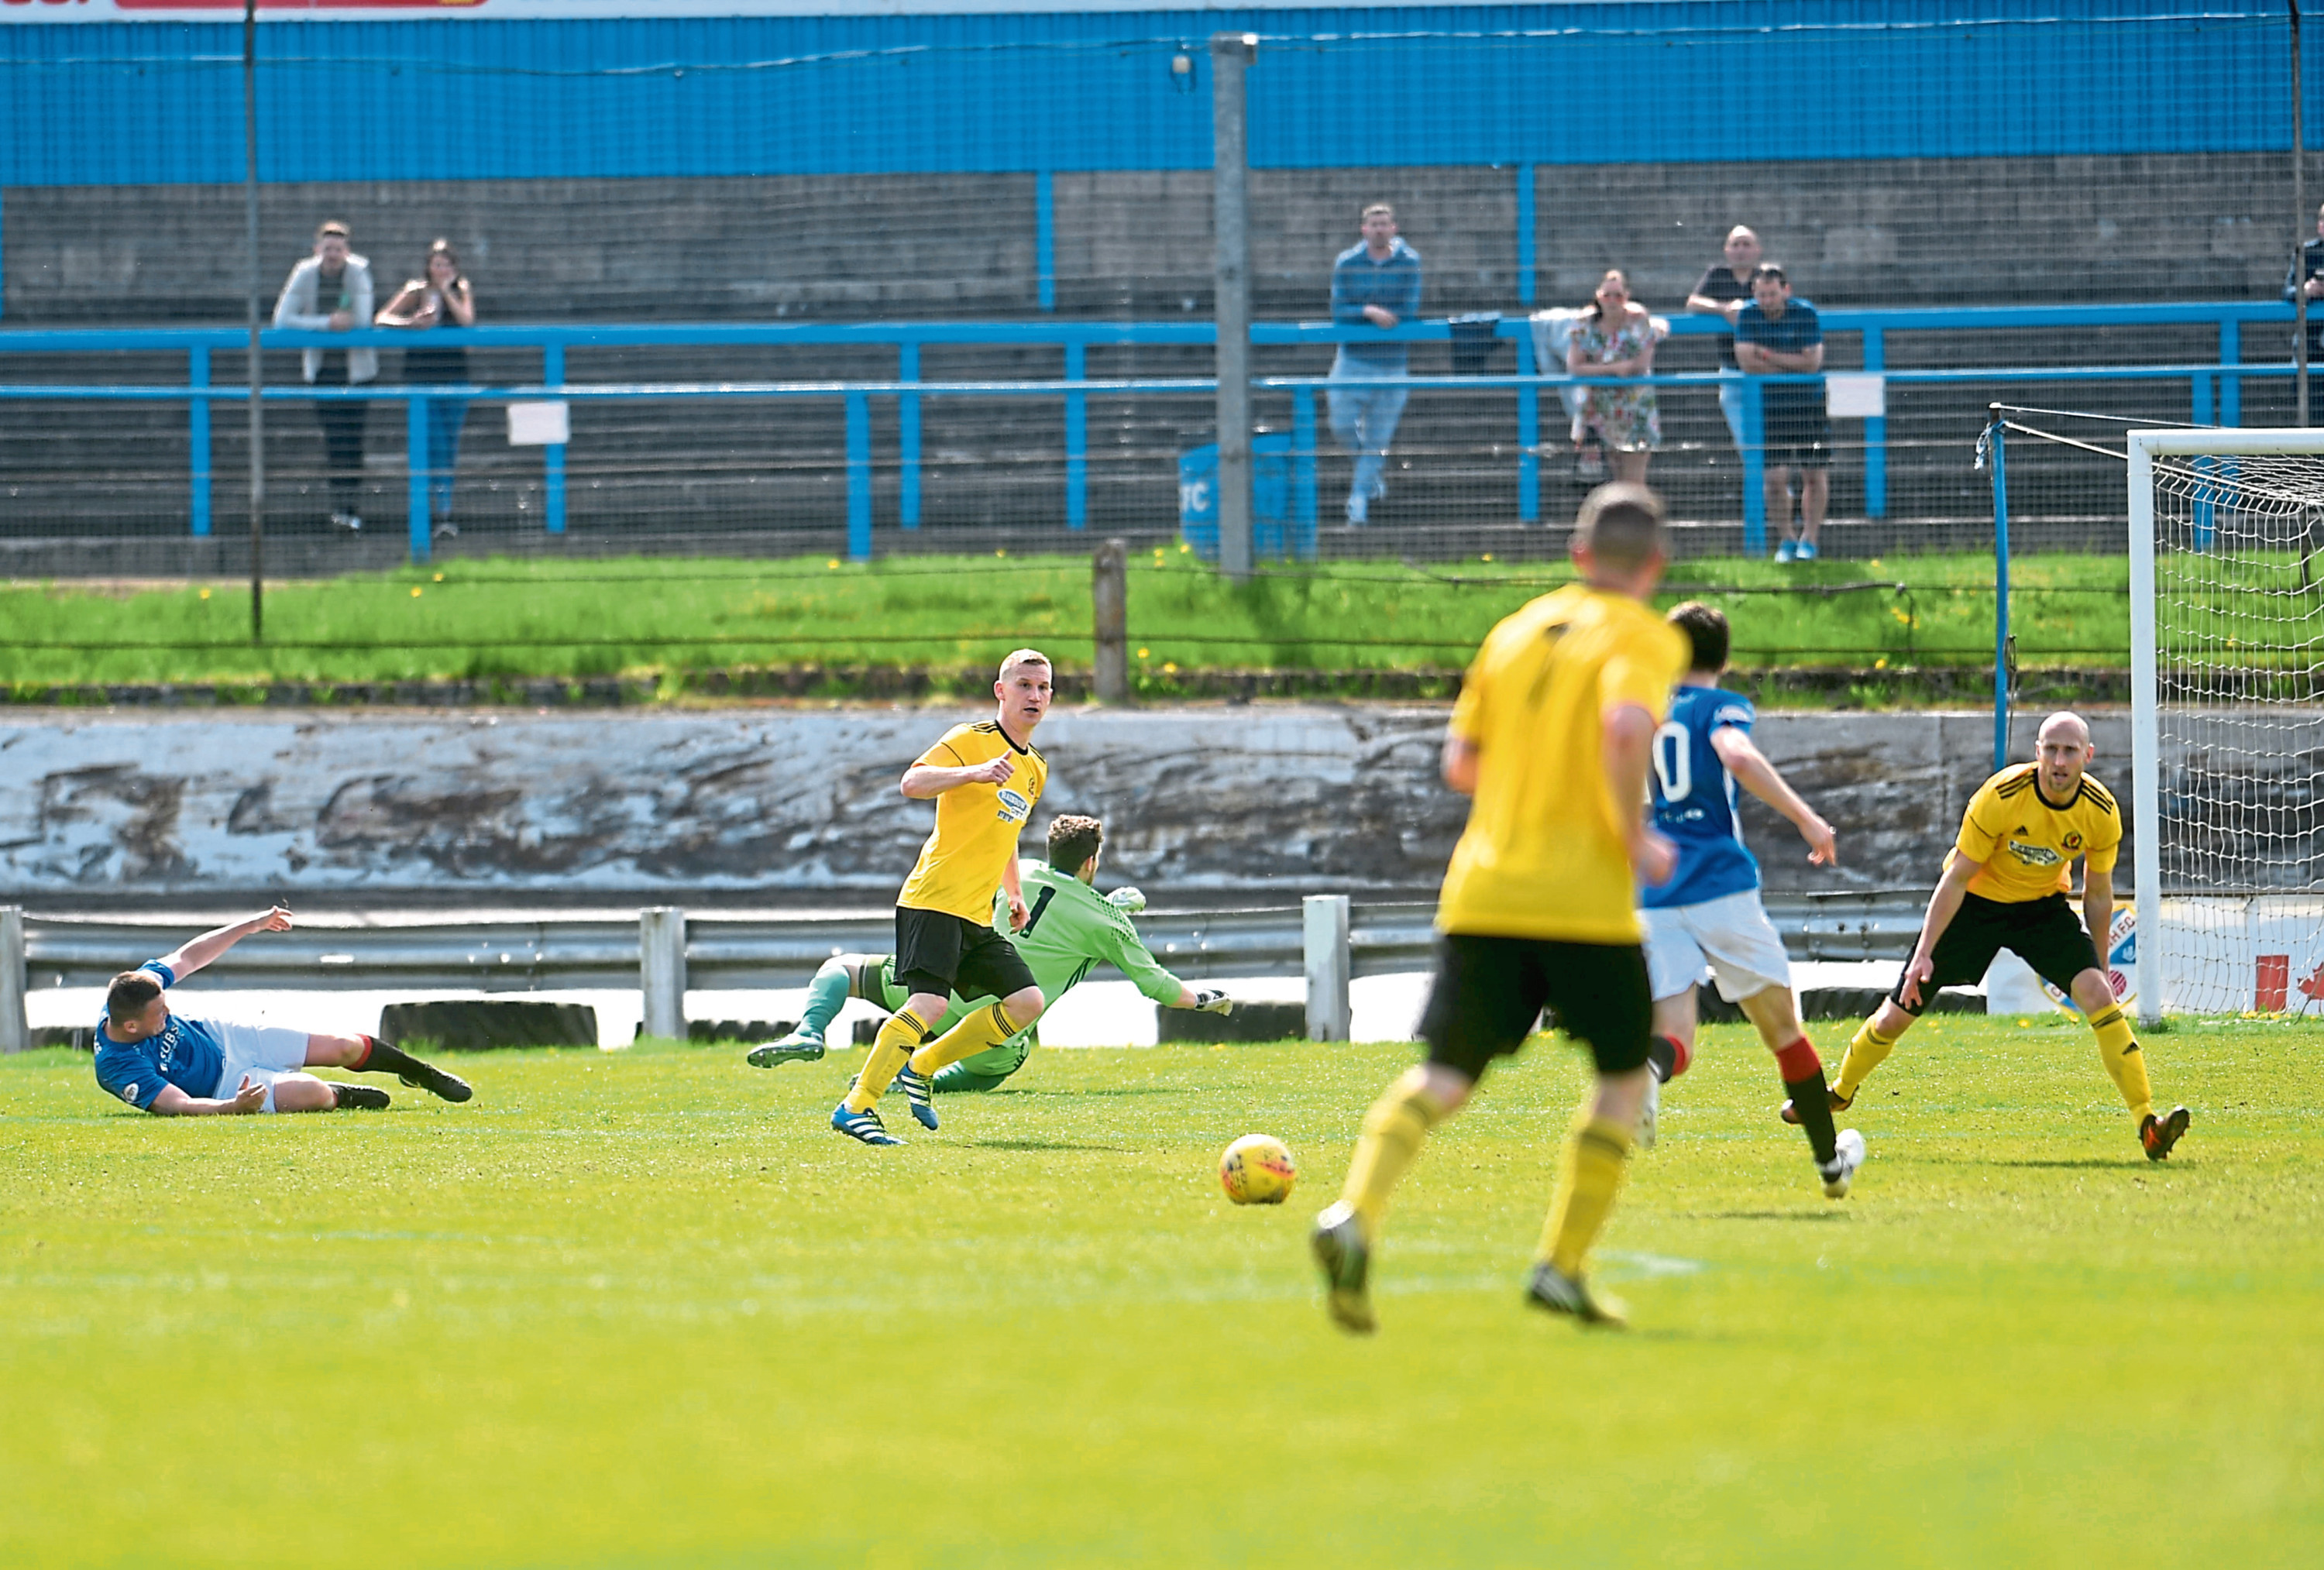 Stuart McKenzie being floored by Cowdenbeath player Jordyn Sheerin in the lead-up to the home side's winner